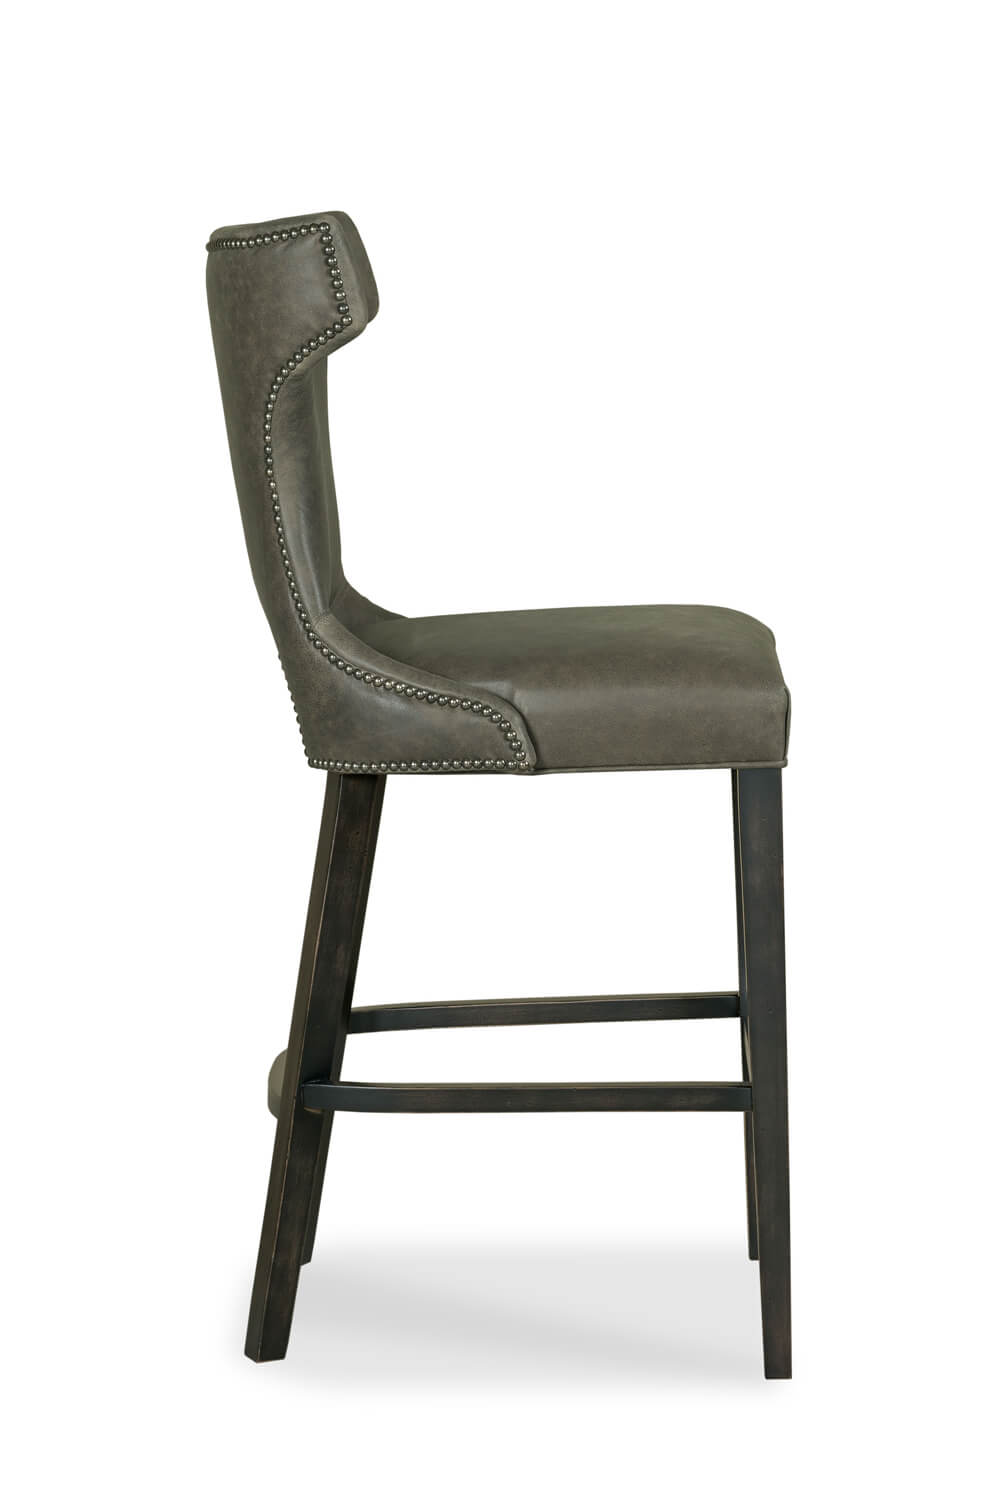 Fairfields gavin wood bar stool with upholstered back and seat